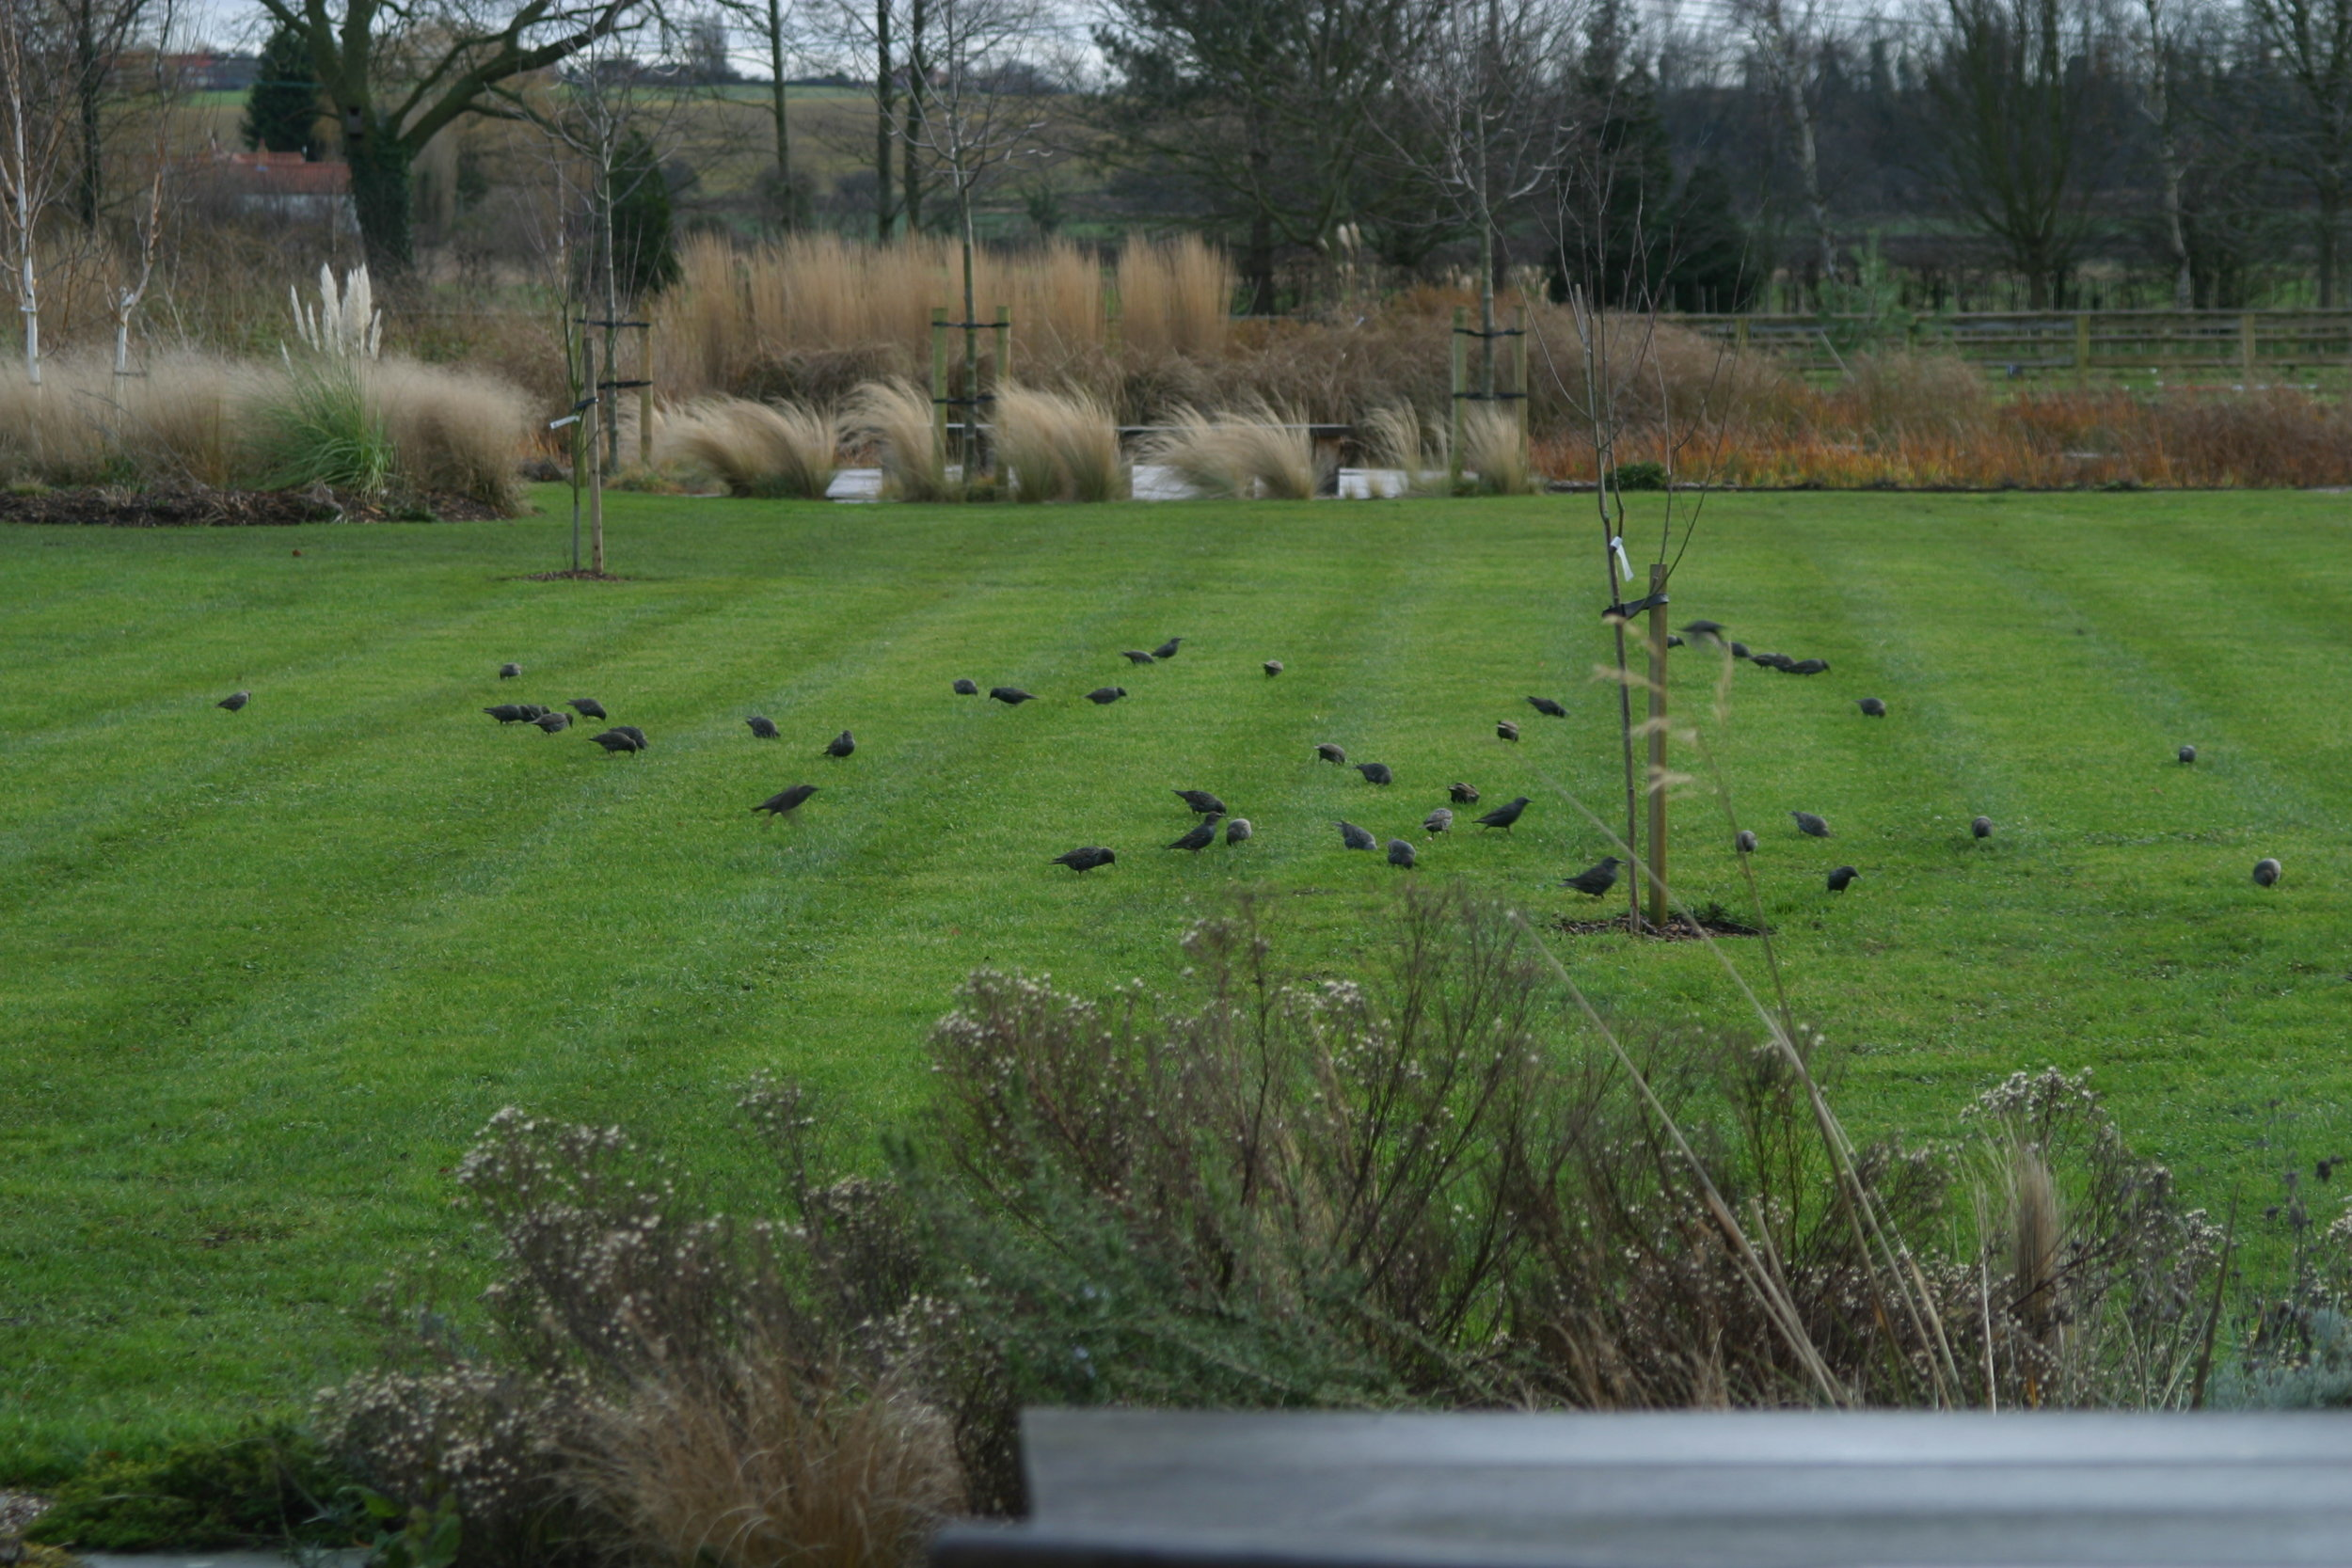 starlings feasting on the lawn in winter.JPG